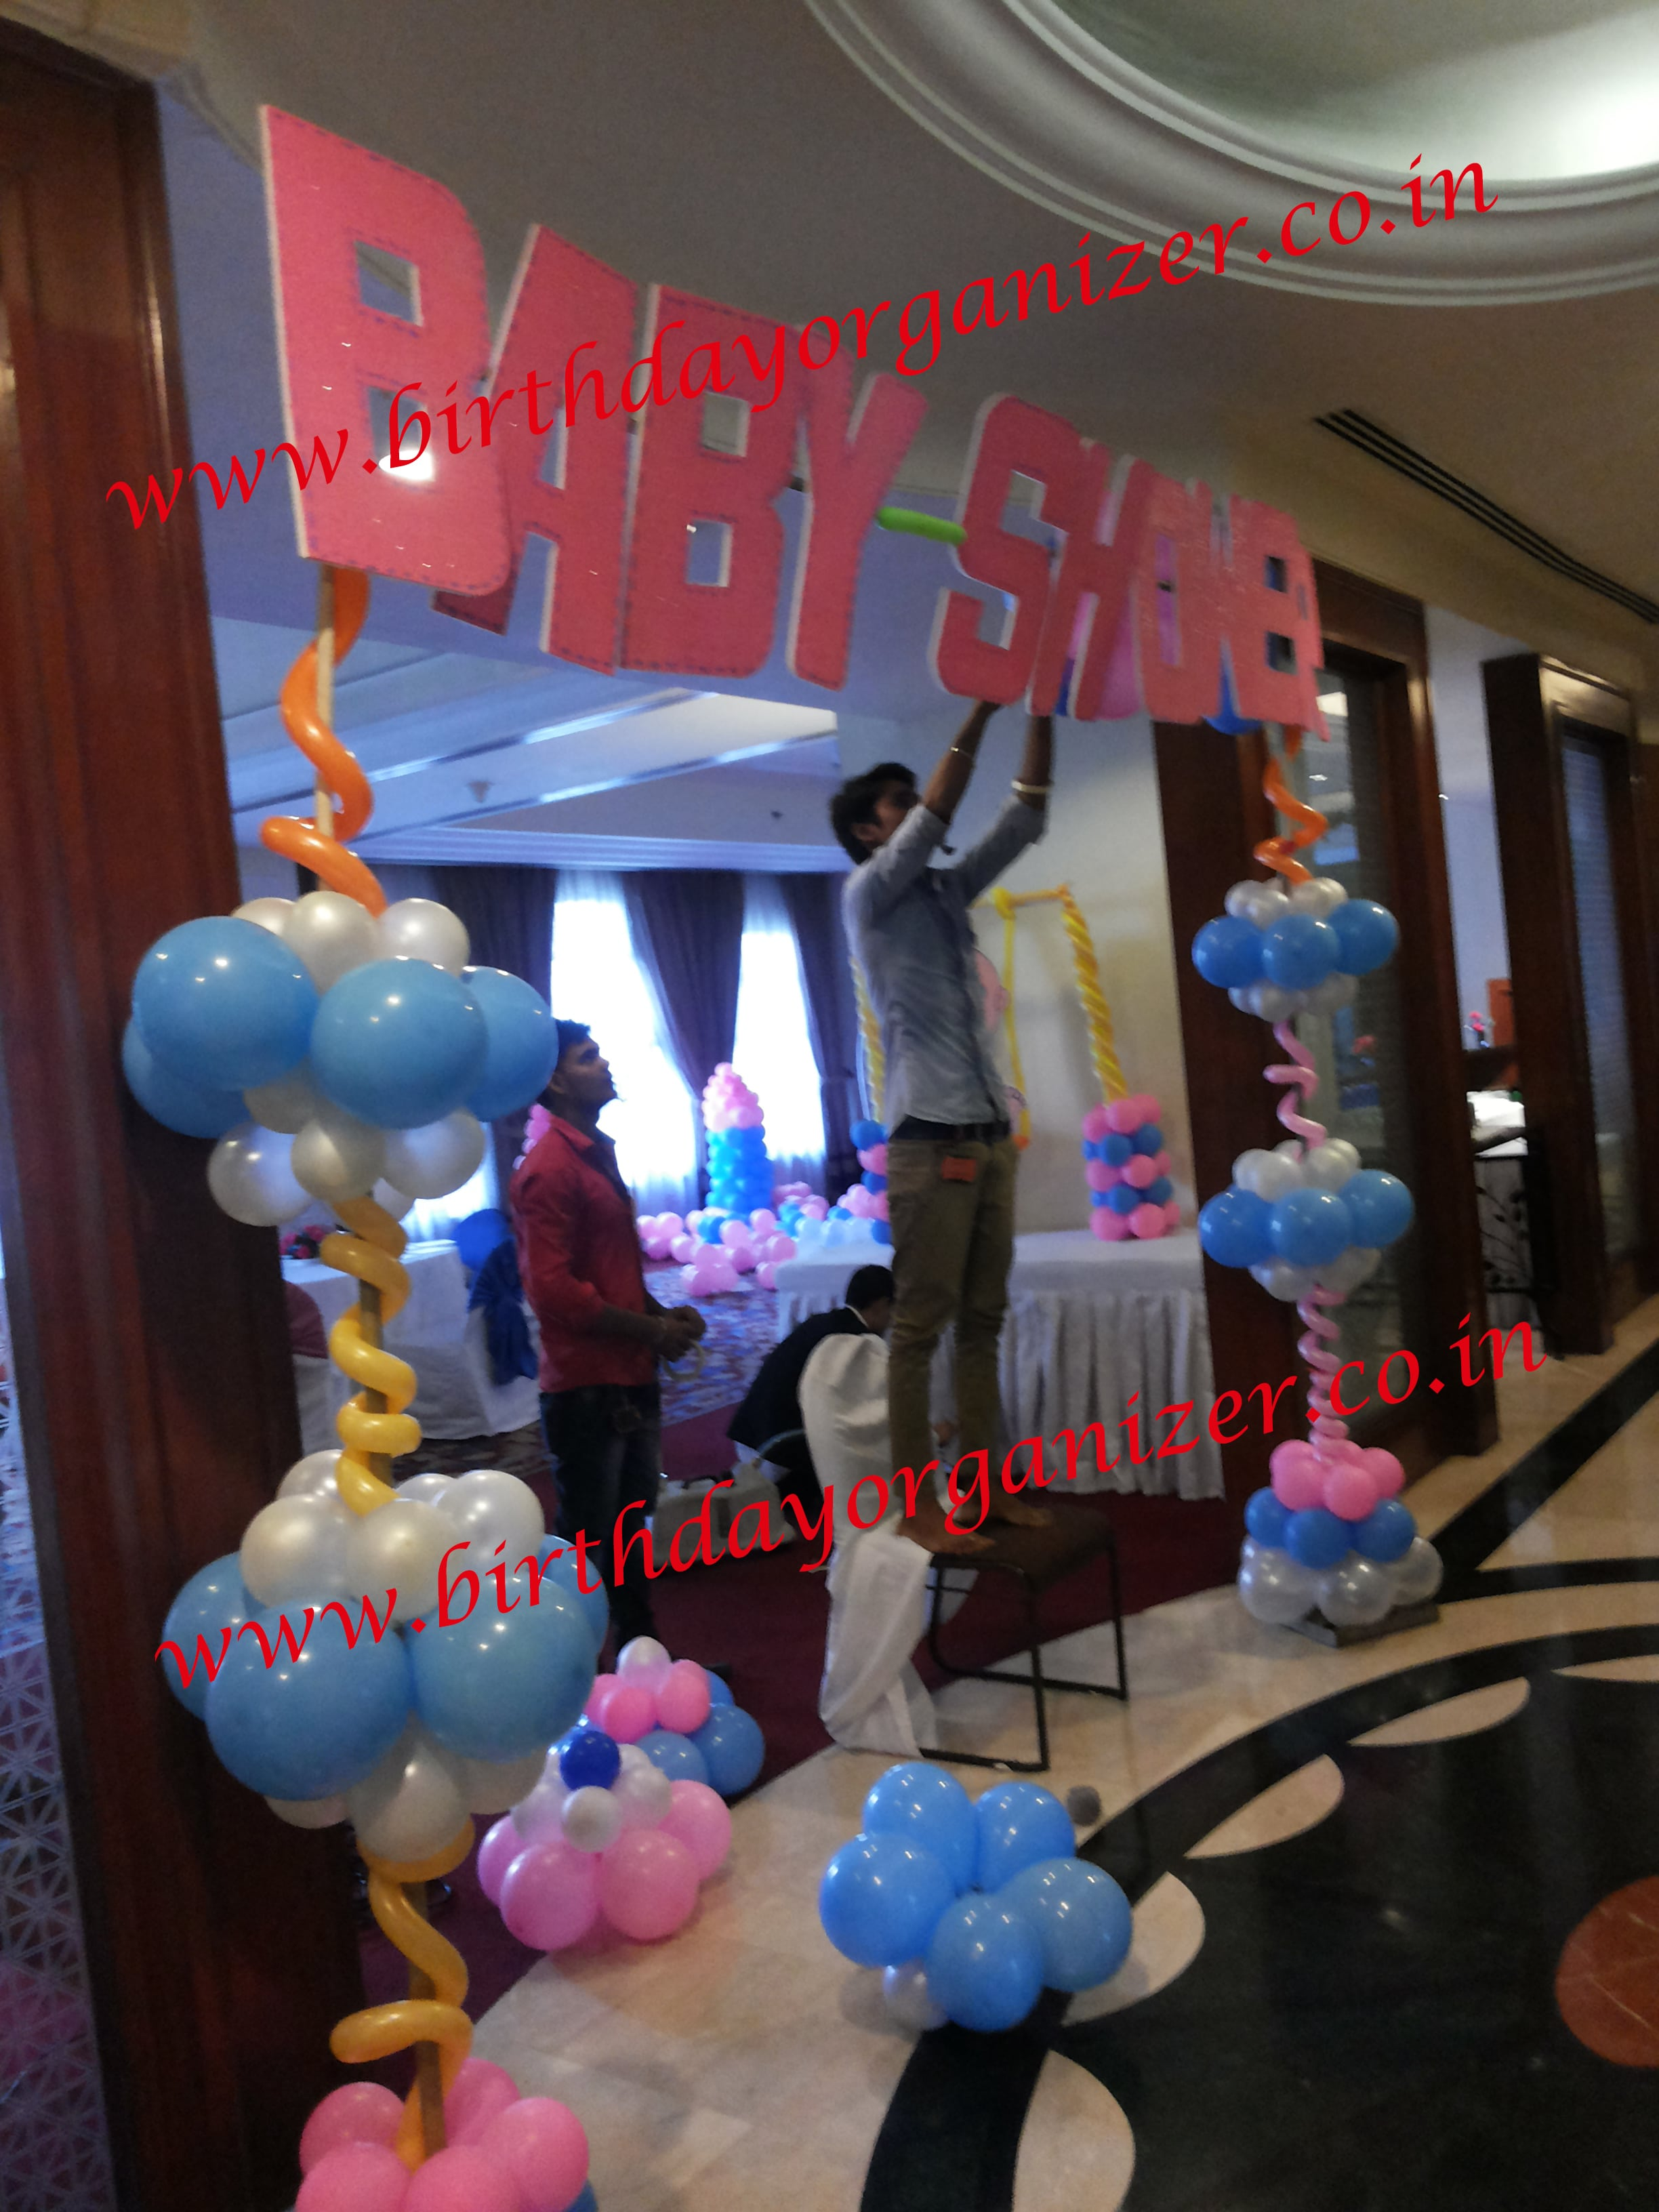 Baby shower party organizer in noida, baby shower party planner in noida delhi ncr